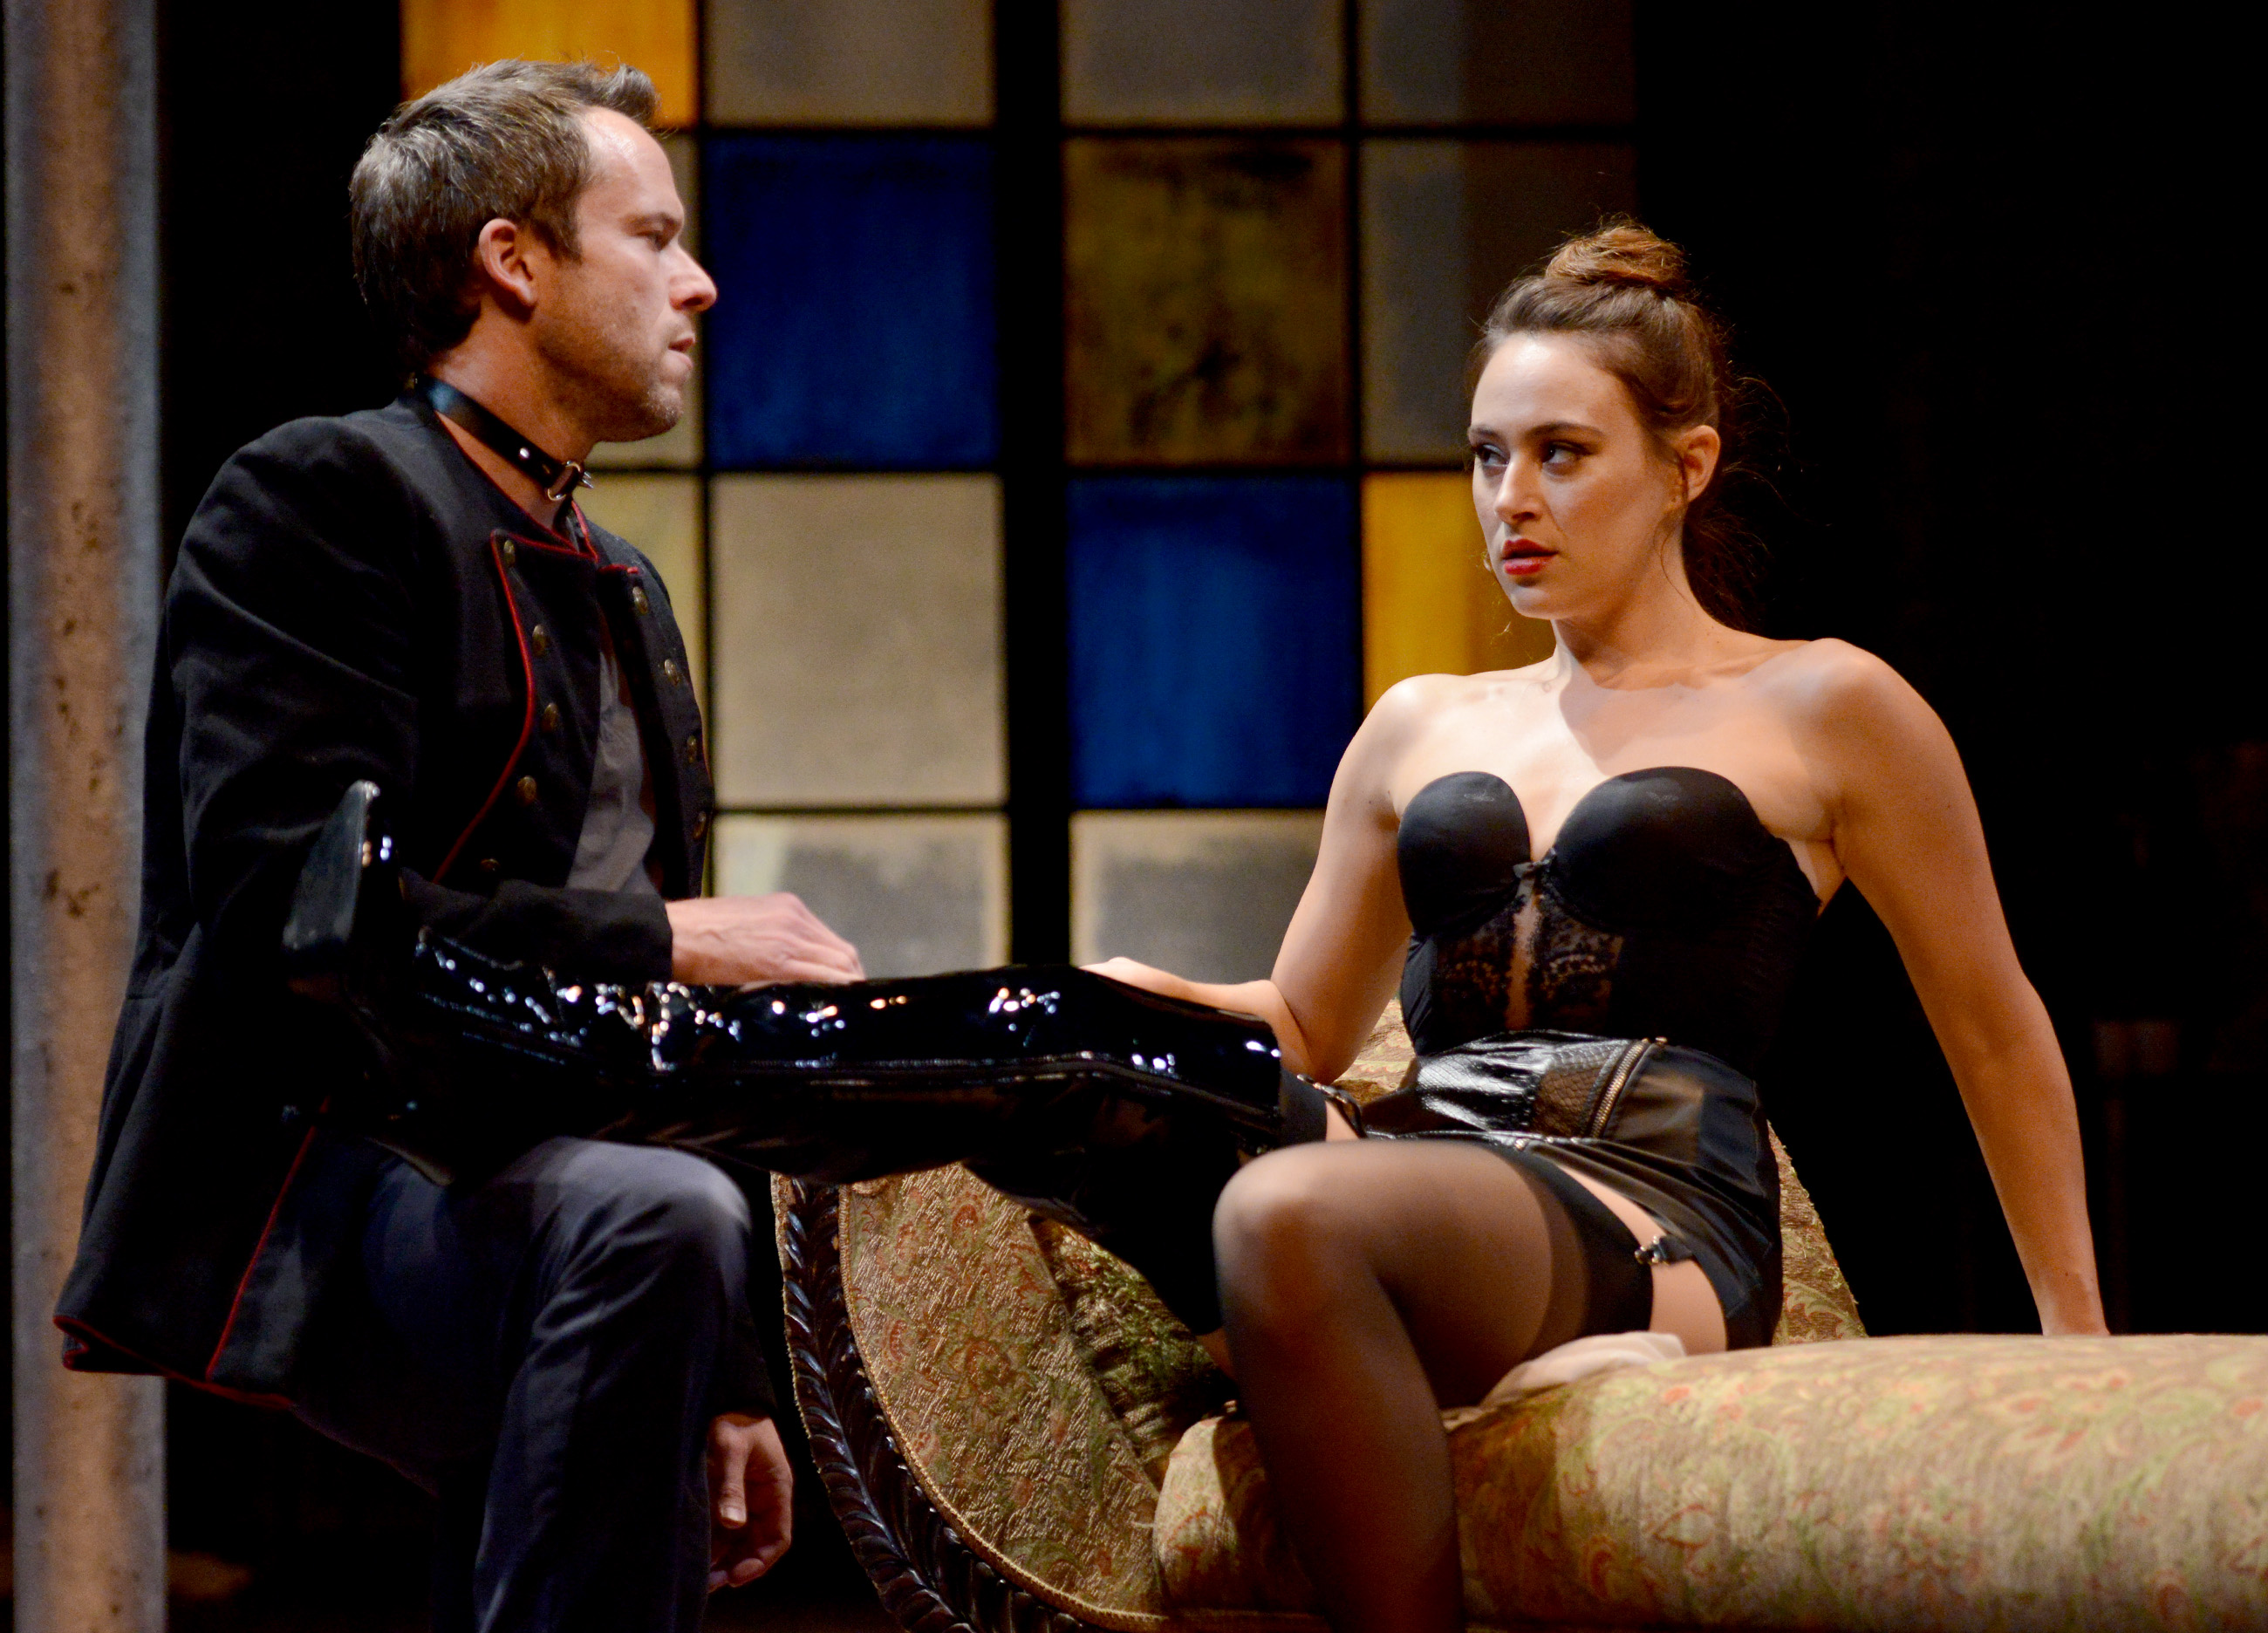 If the shoe fits, fear it. Vanda (Whitney Maris Brown) aspires to play the dominatrix in shiny boots of leather, with Thomas (Christian Conn) as her footman.